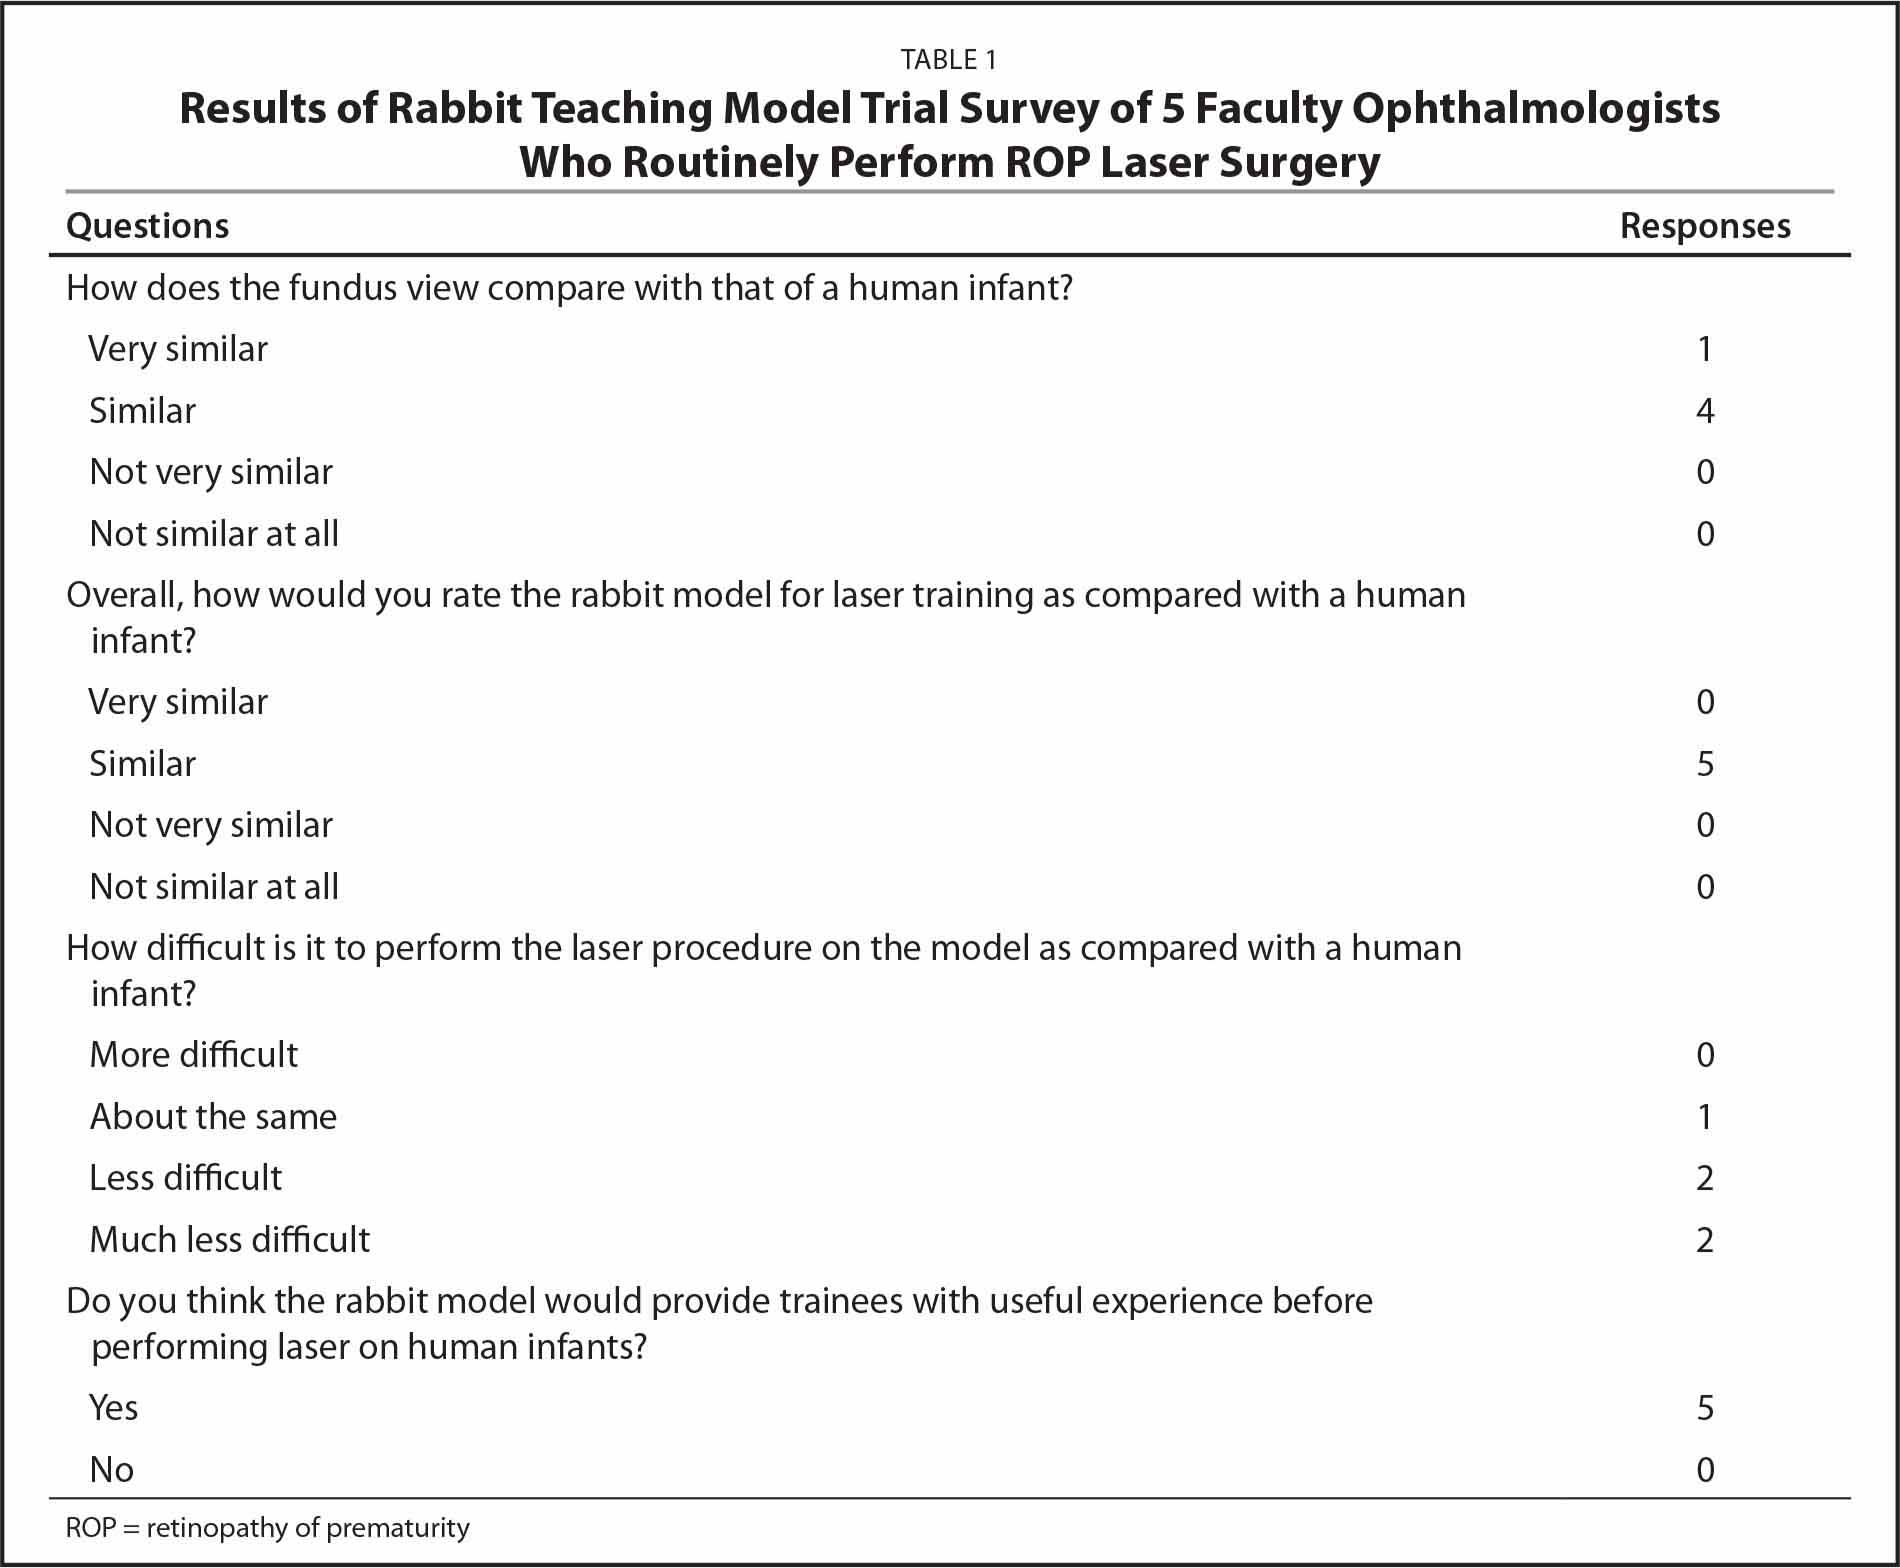 Results of Rabbit Teaching Model Trial Survey of 5 Faculty Ophthalmologists Who Routinely Perform ROP Laser Surgery